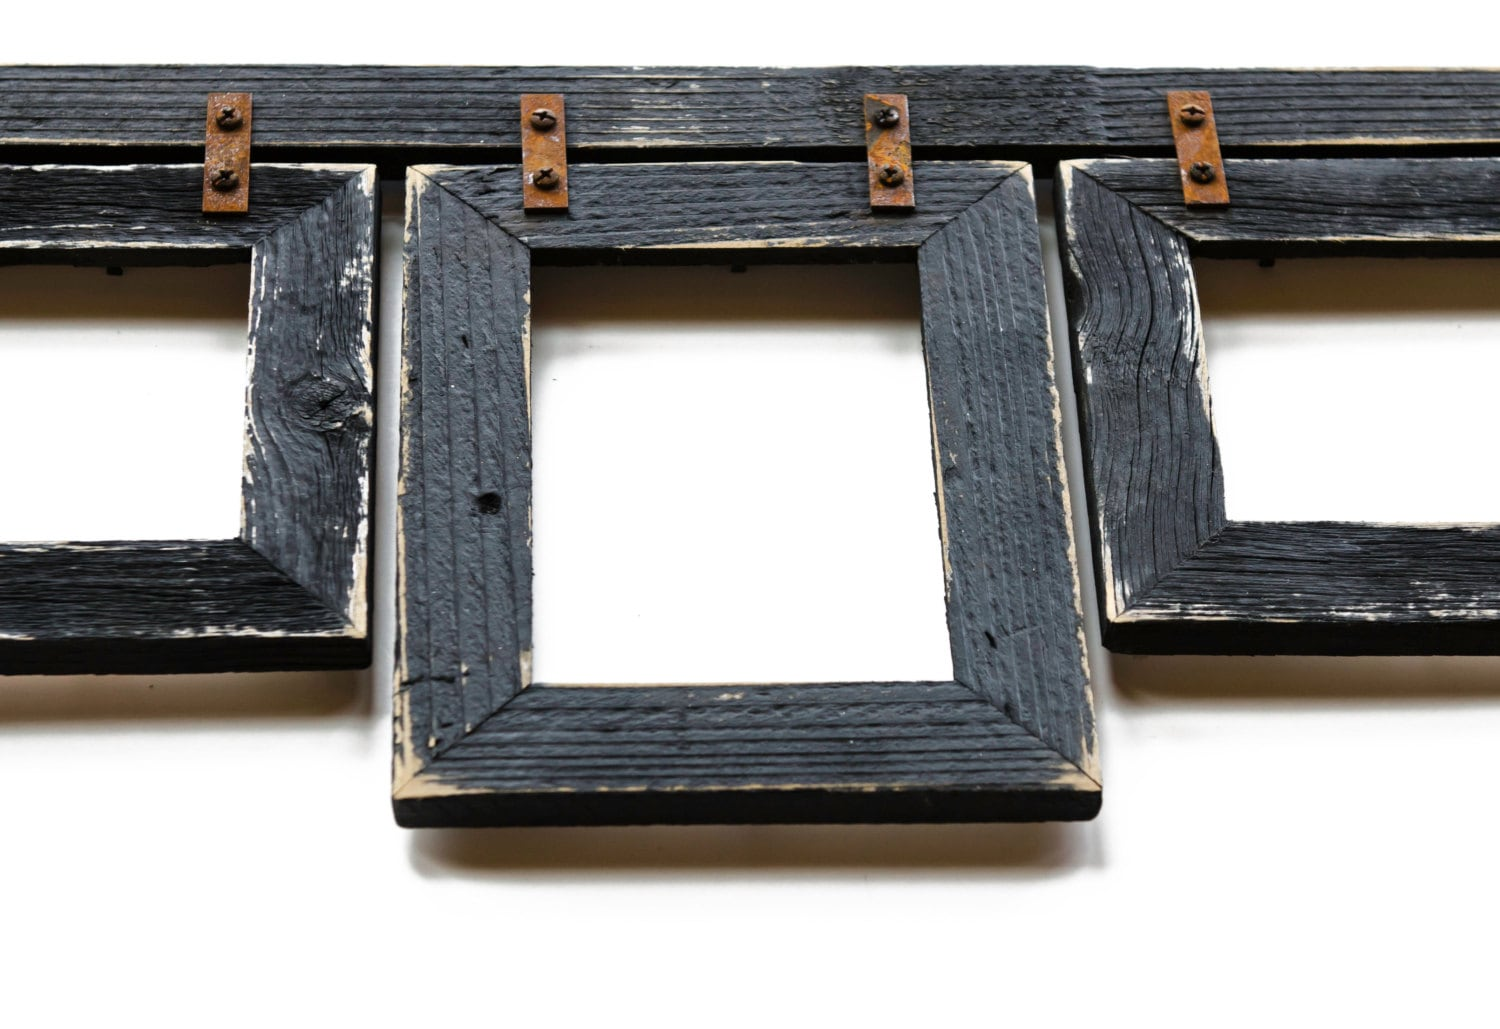 4x6 barnwood collage picture frame 3 4x6 multi opening frame 4x6 barnwood collage picture frame 3 4x6 multi opening frame rustic picture frames jeuxipadfo Gallery